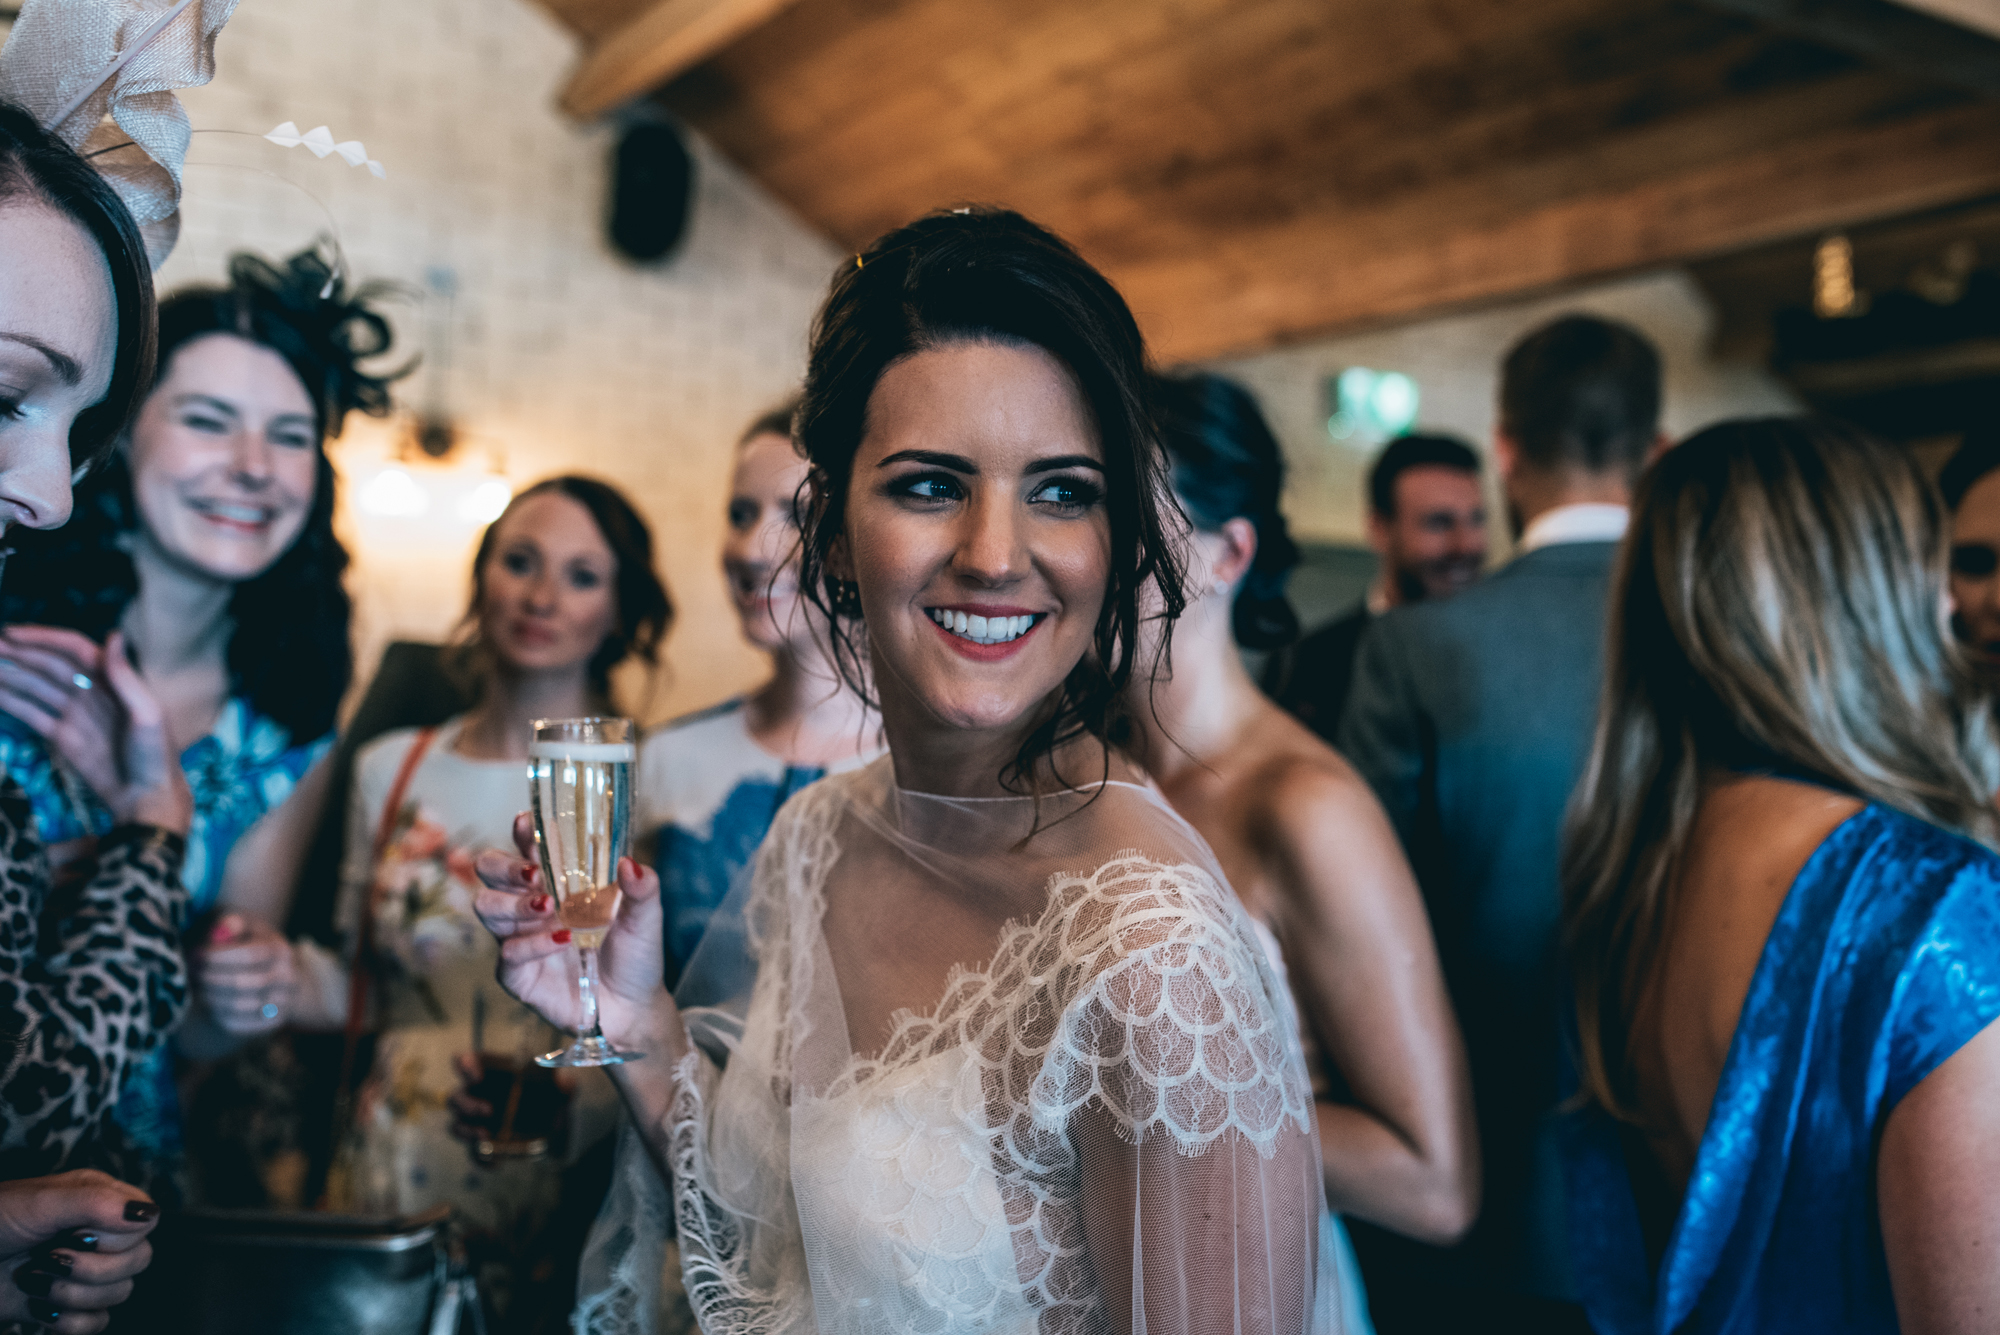 Kate-Beaumont-Sheffield-Lucy-Bohemian-Lace-Dress-Barn-Wedding-Cumbria-25.jpg